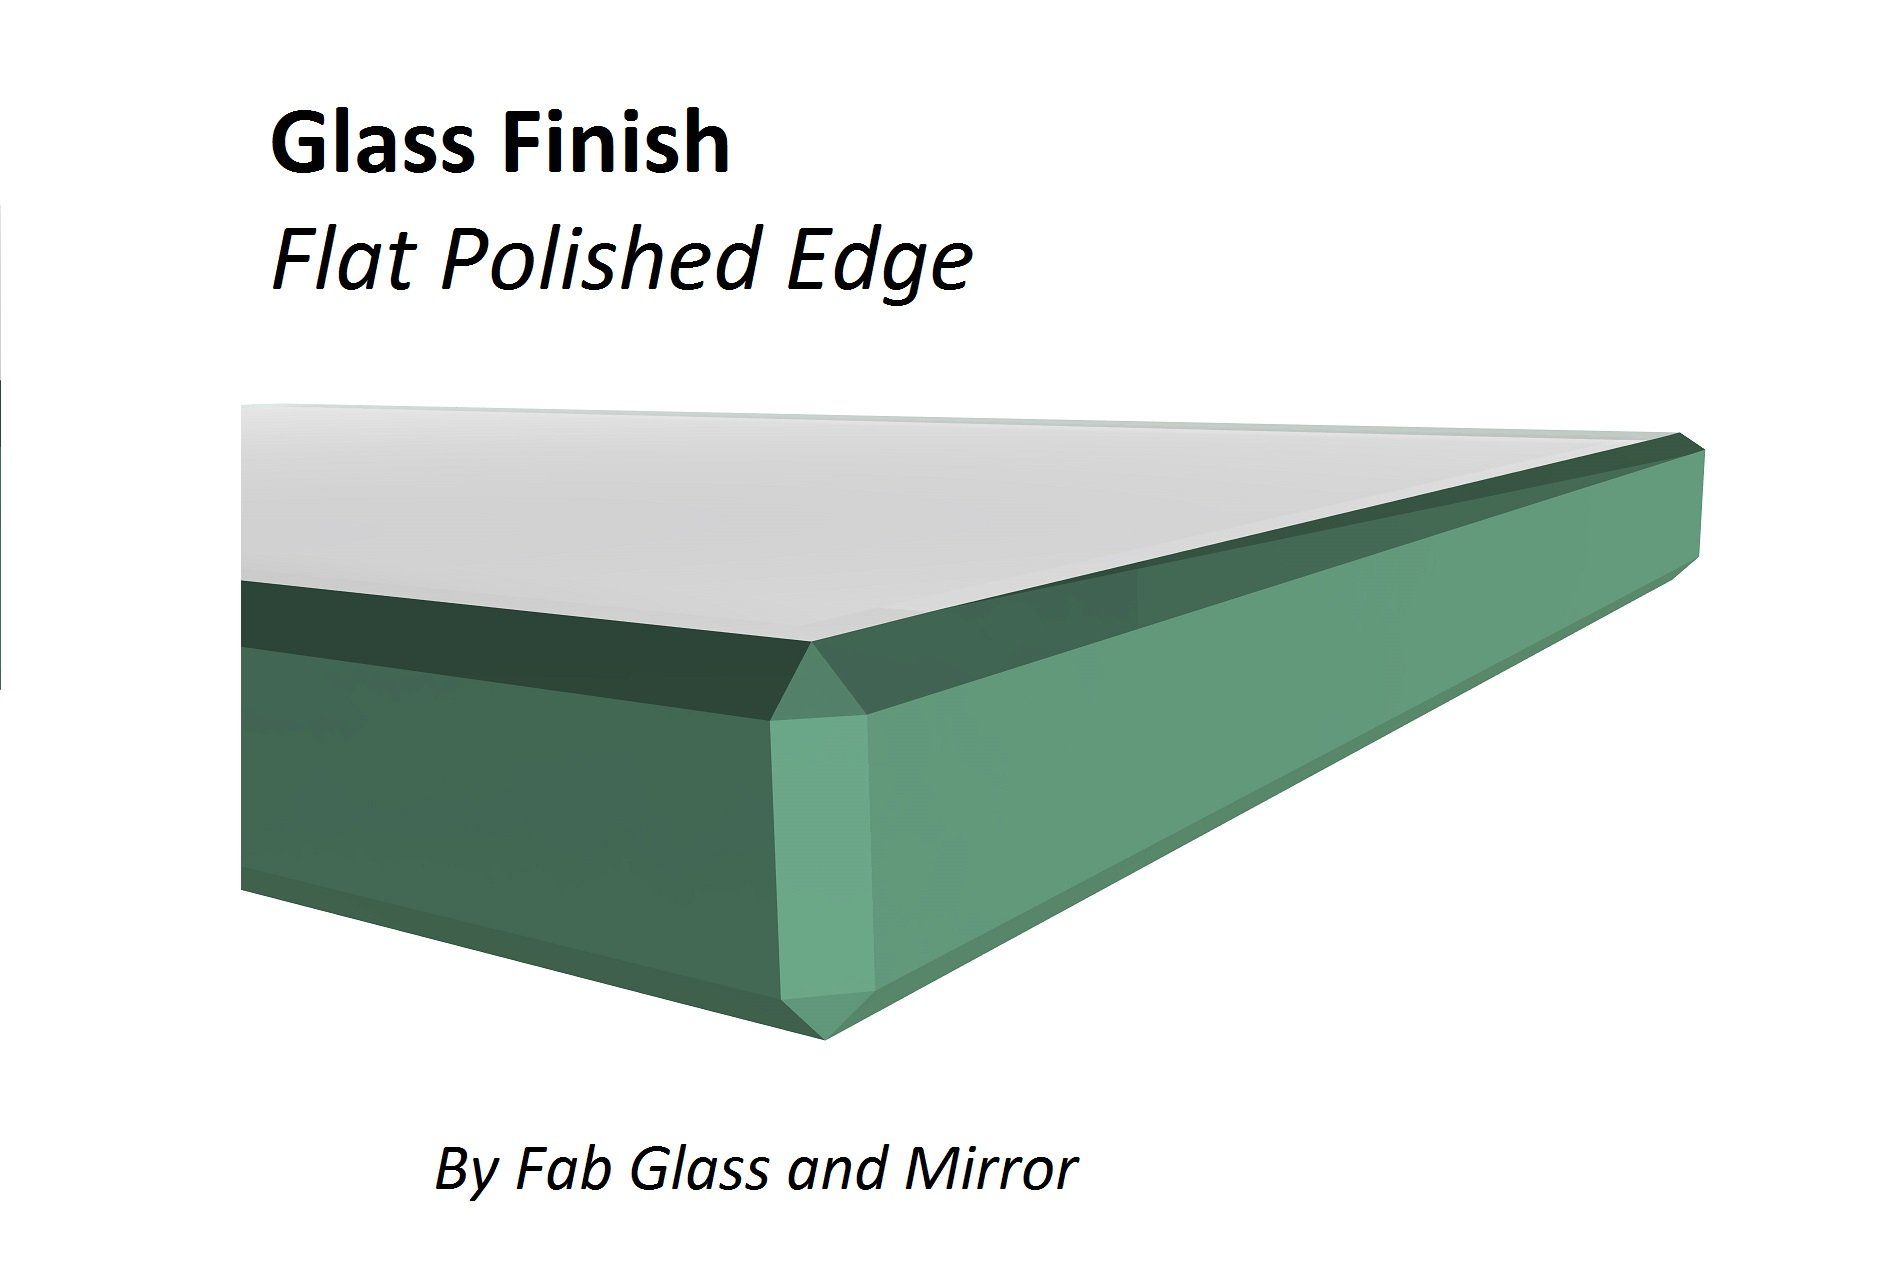 22'' Inch Square Clear Glass Table Top 1/4'' Thick Flat Polished Tempered Eased Corners by Fab Glass and Mirror